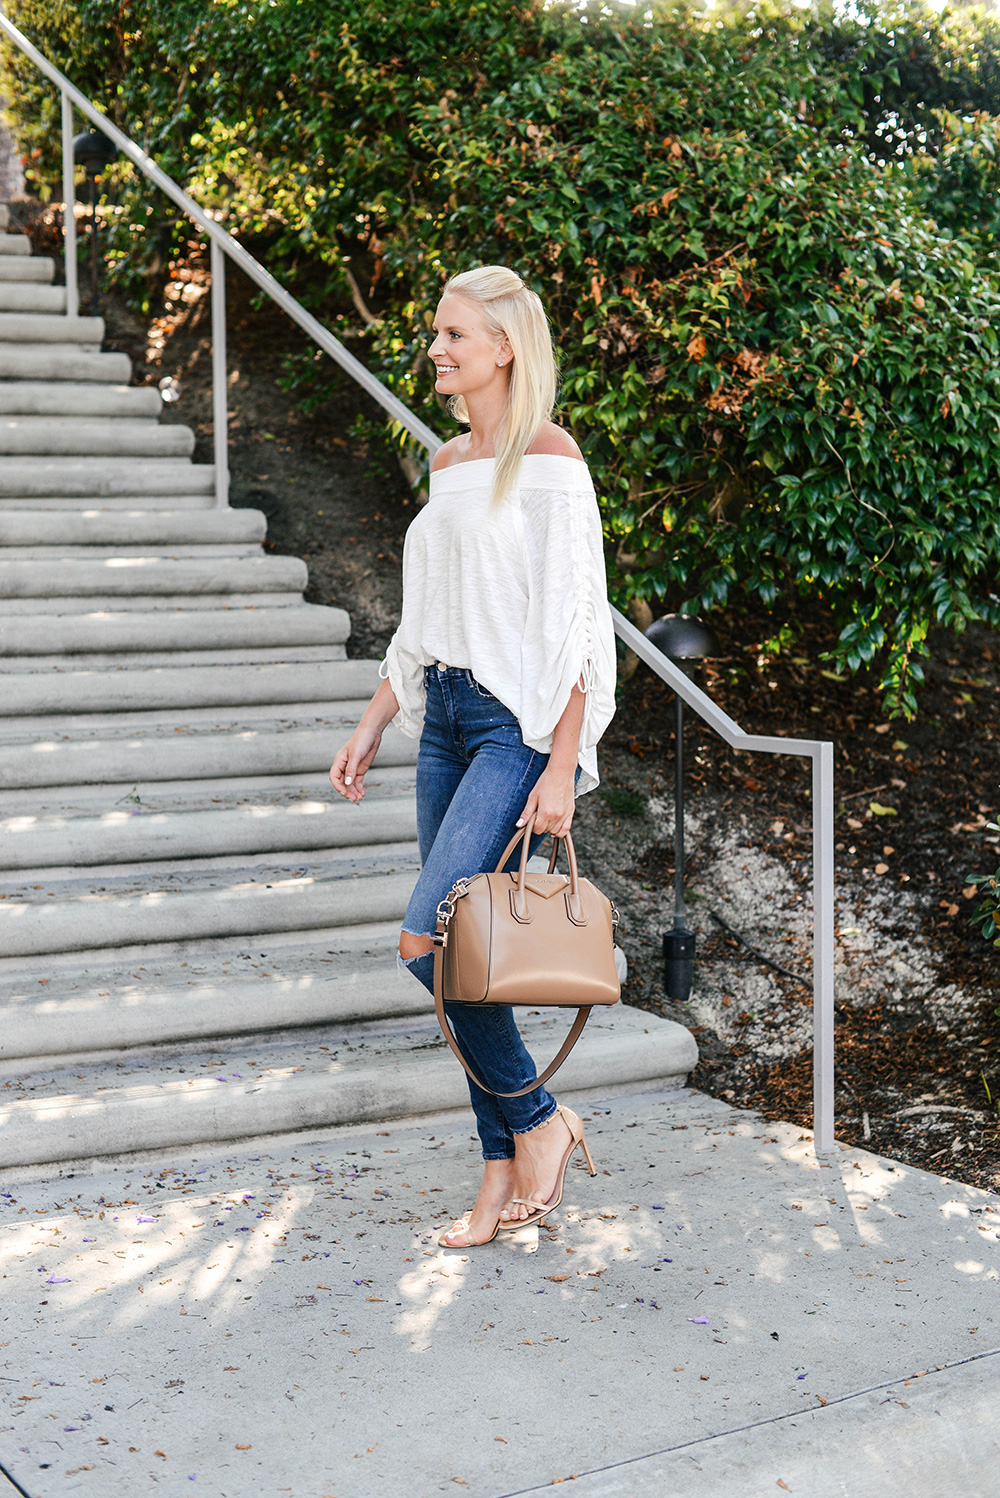 Free People Bohema Top at Nordstrom | The Style Scribe